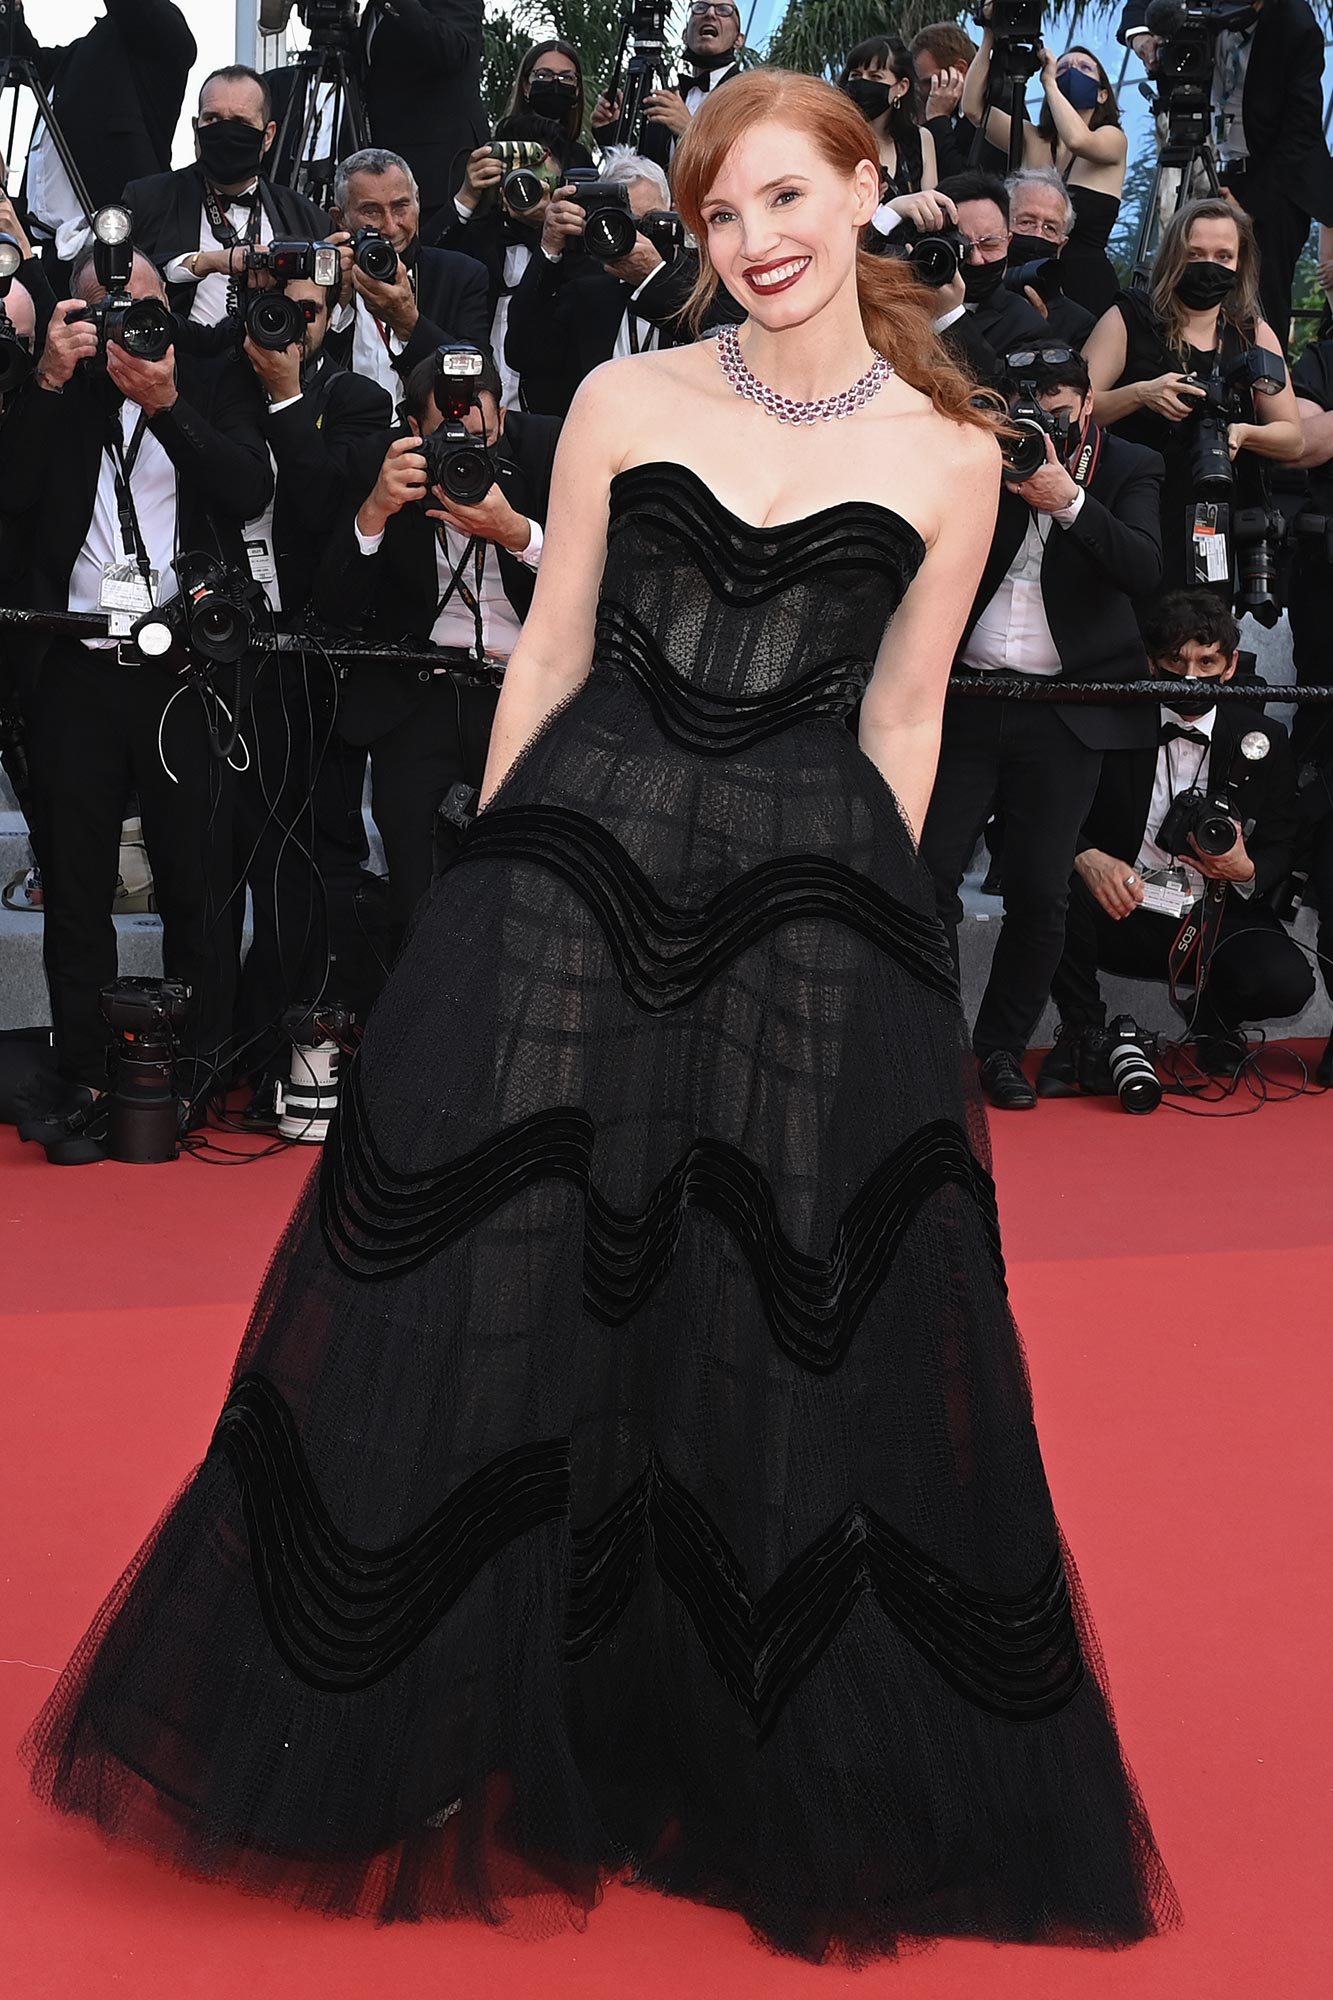 Cannes 2021 Red Carpet - Jessica Chastain